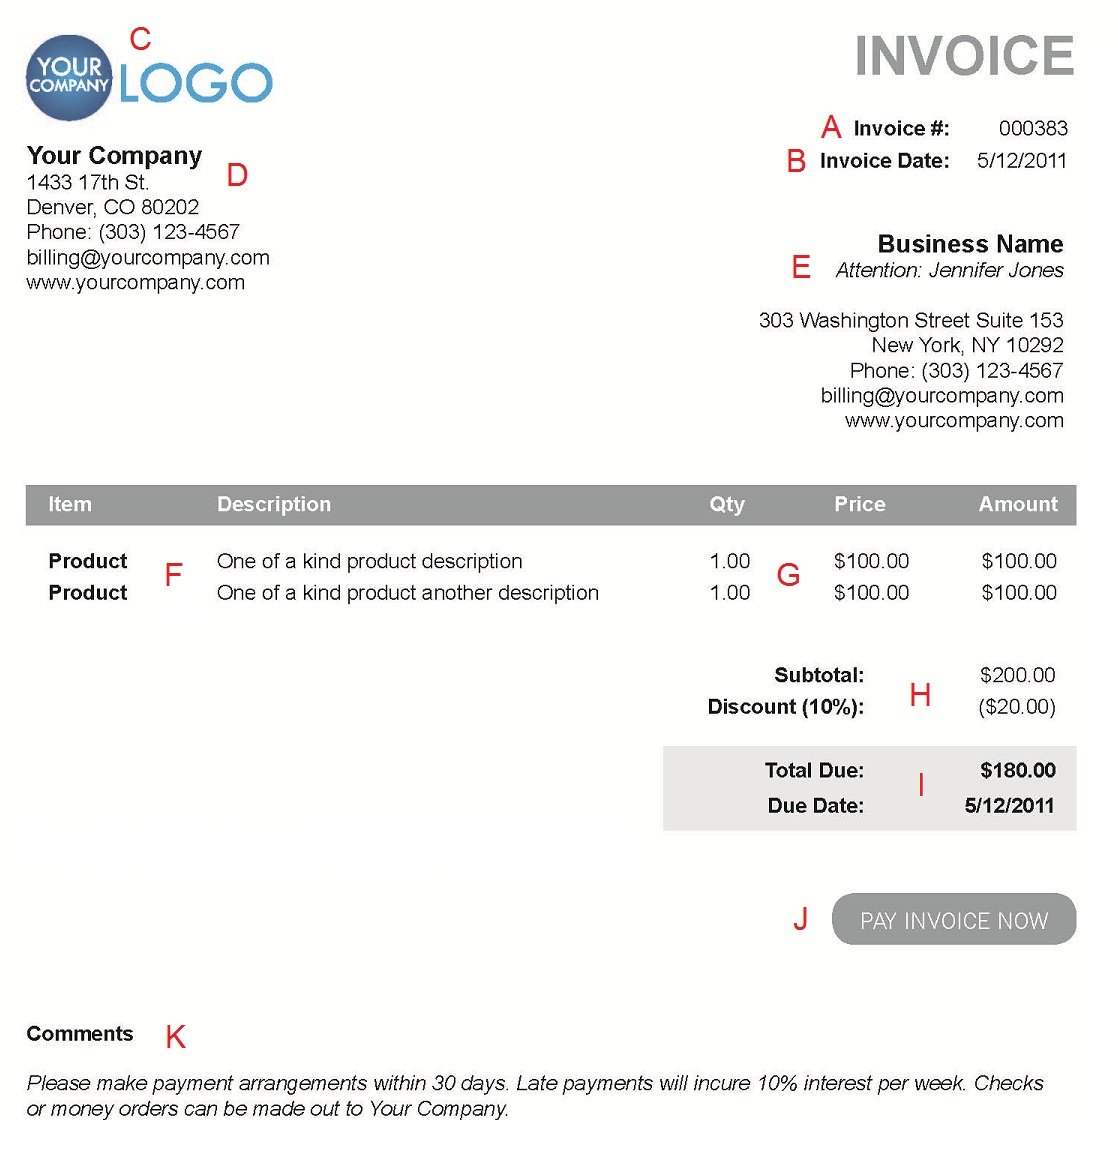 Coachoutletonlineplusus  Terrific The  Different Sections Of An Electronic Payment Invoice With Marvelous A  With Appealing Cool Invoice Template Also Dealer Invoice Price Toyota In Addition Contractor Invoice Software And Invoice Enclosed As Well As Basic Invoice Template Free Additionally Accounting Invoice From Paysimplecom With Coachoutletonlineplusus  Marvelous The  Different Sections Of An Electronic Payment Invoice With Appealing A  And Terrific Cool Invoice Template Also Dealer Invoice Price Toyota In Addition Contractor Invoice Software From Paysimplecom